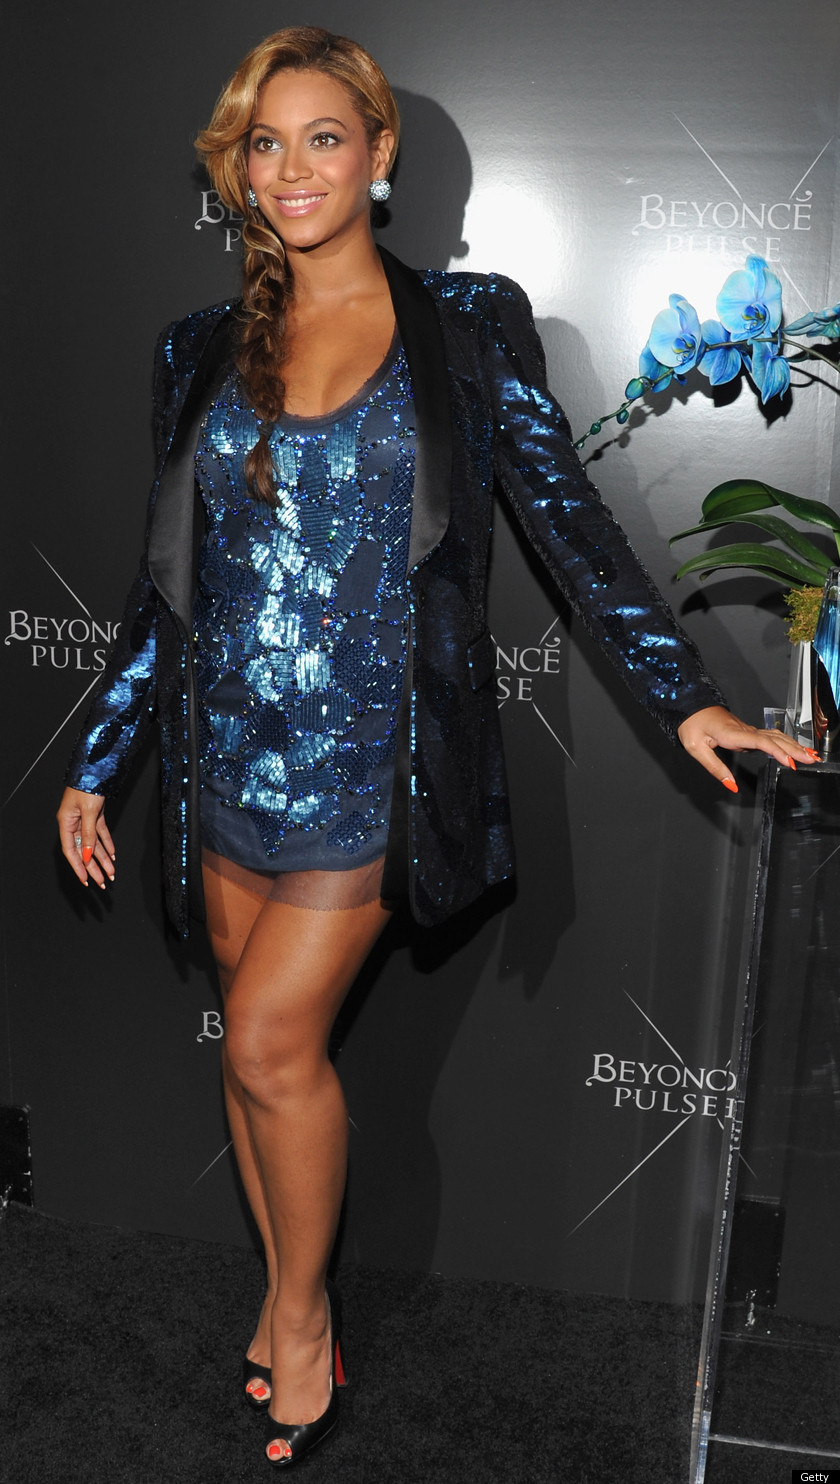 Pregnant Beyonce Shows Off Her Legs (PHOTOS) | HuffPost